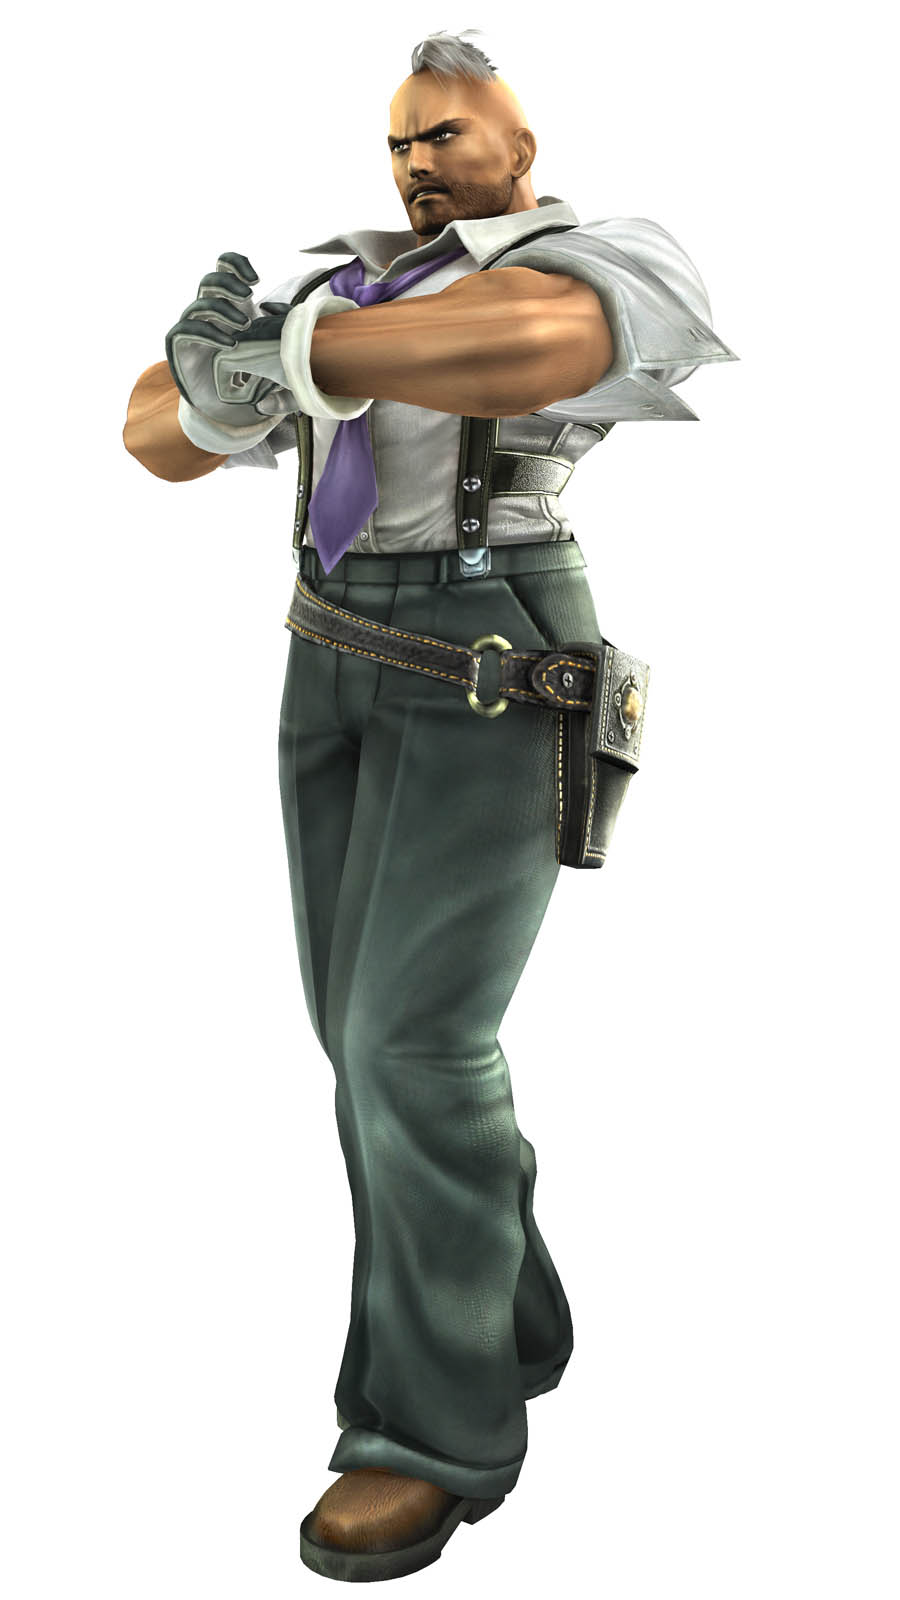 Seth king of fighters super smash bros tourney wiki fandom powered by wikia - King of fighters characters pictures ...